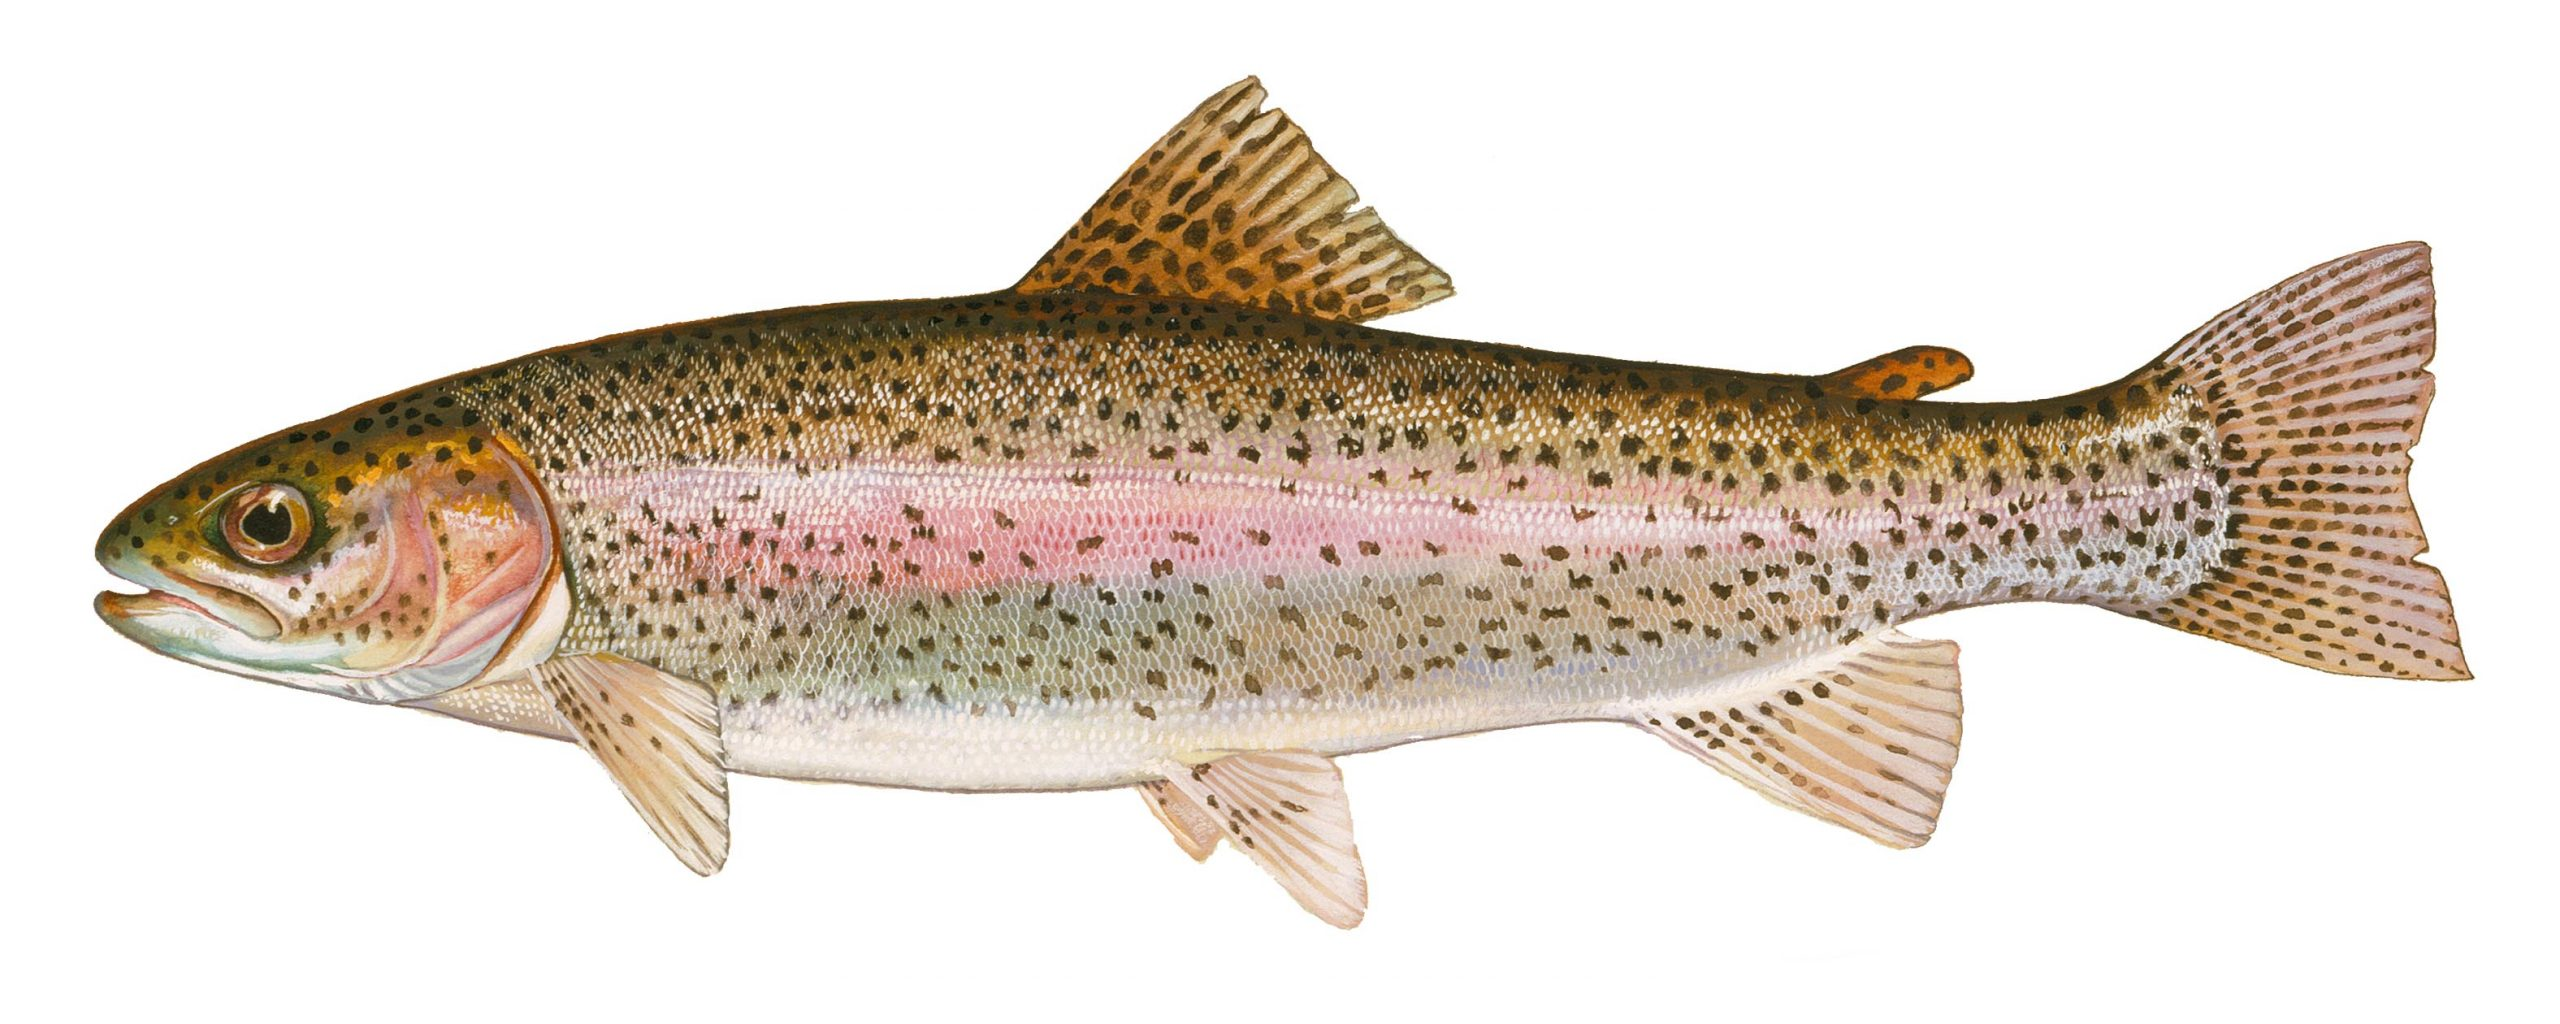 Trout Pond Open Christmas Day 2020 Spring trout stocking and March 7 season opening at downstate